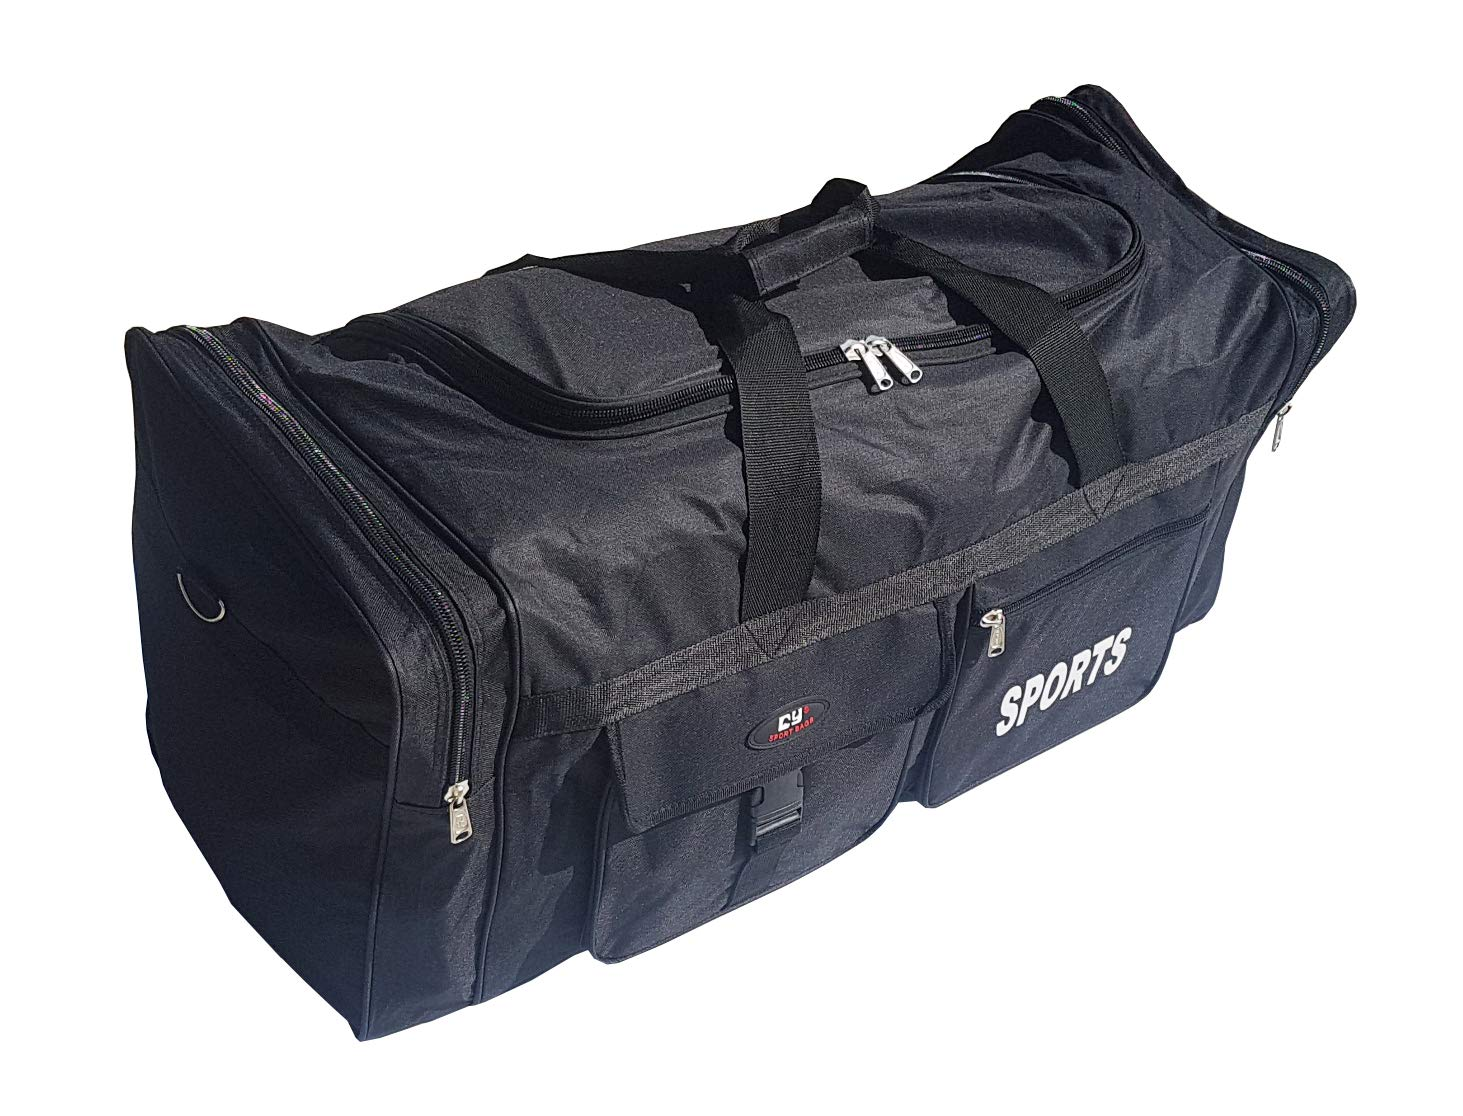 110 Liter Duffel Sport Bag extra Large XXL. Suitcase Ideal for Sport, Gym, Travel and Storage. Very Resistant and Waterproof. Unisex, Black. M&N